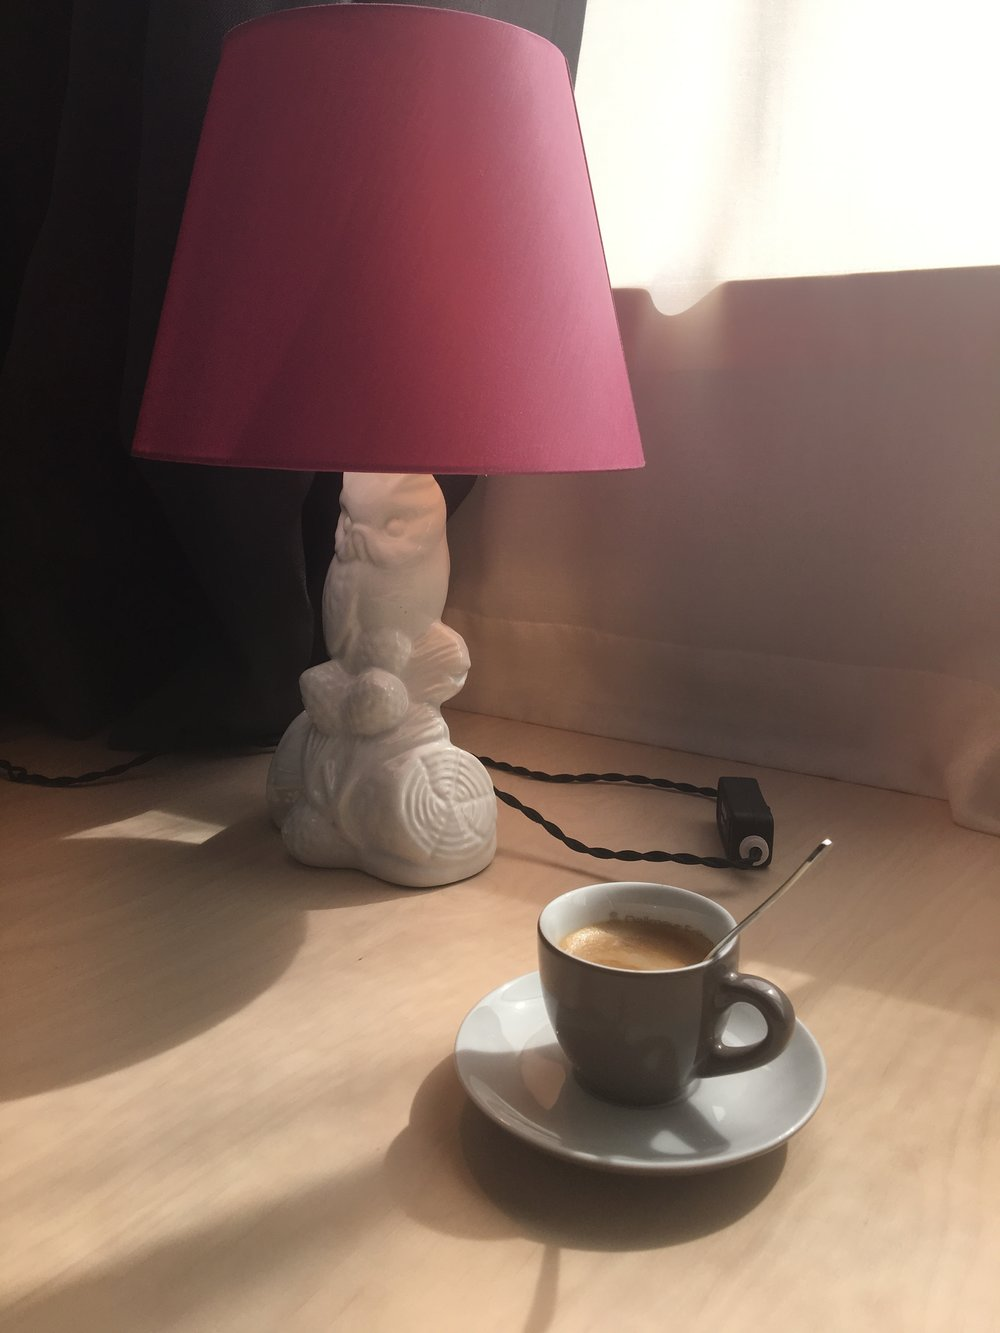 Coffee in the hotel room